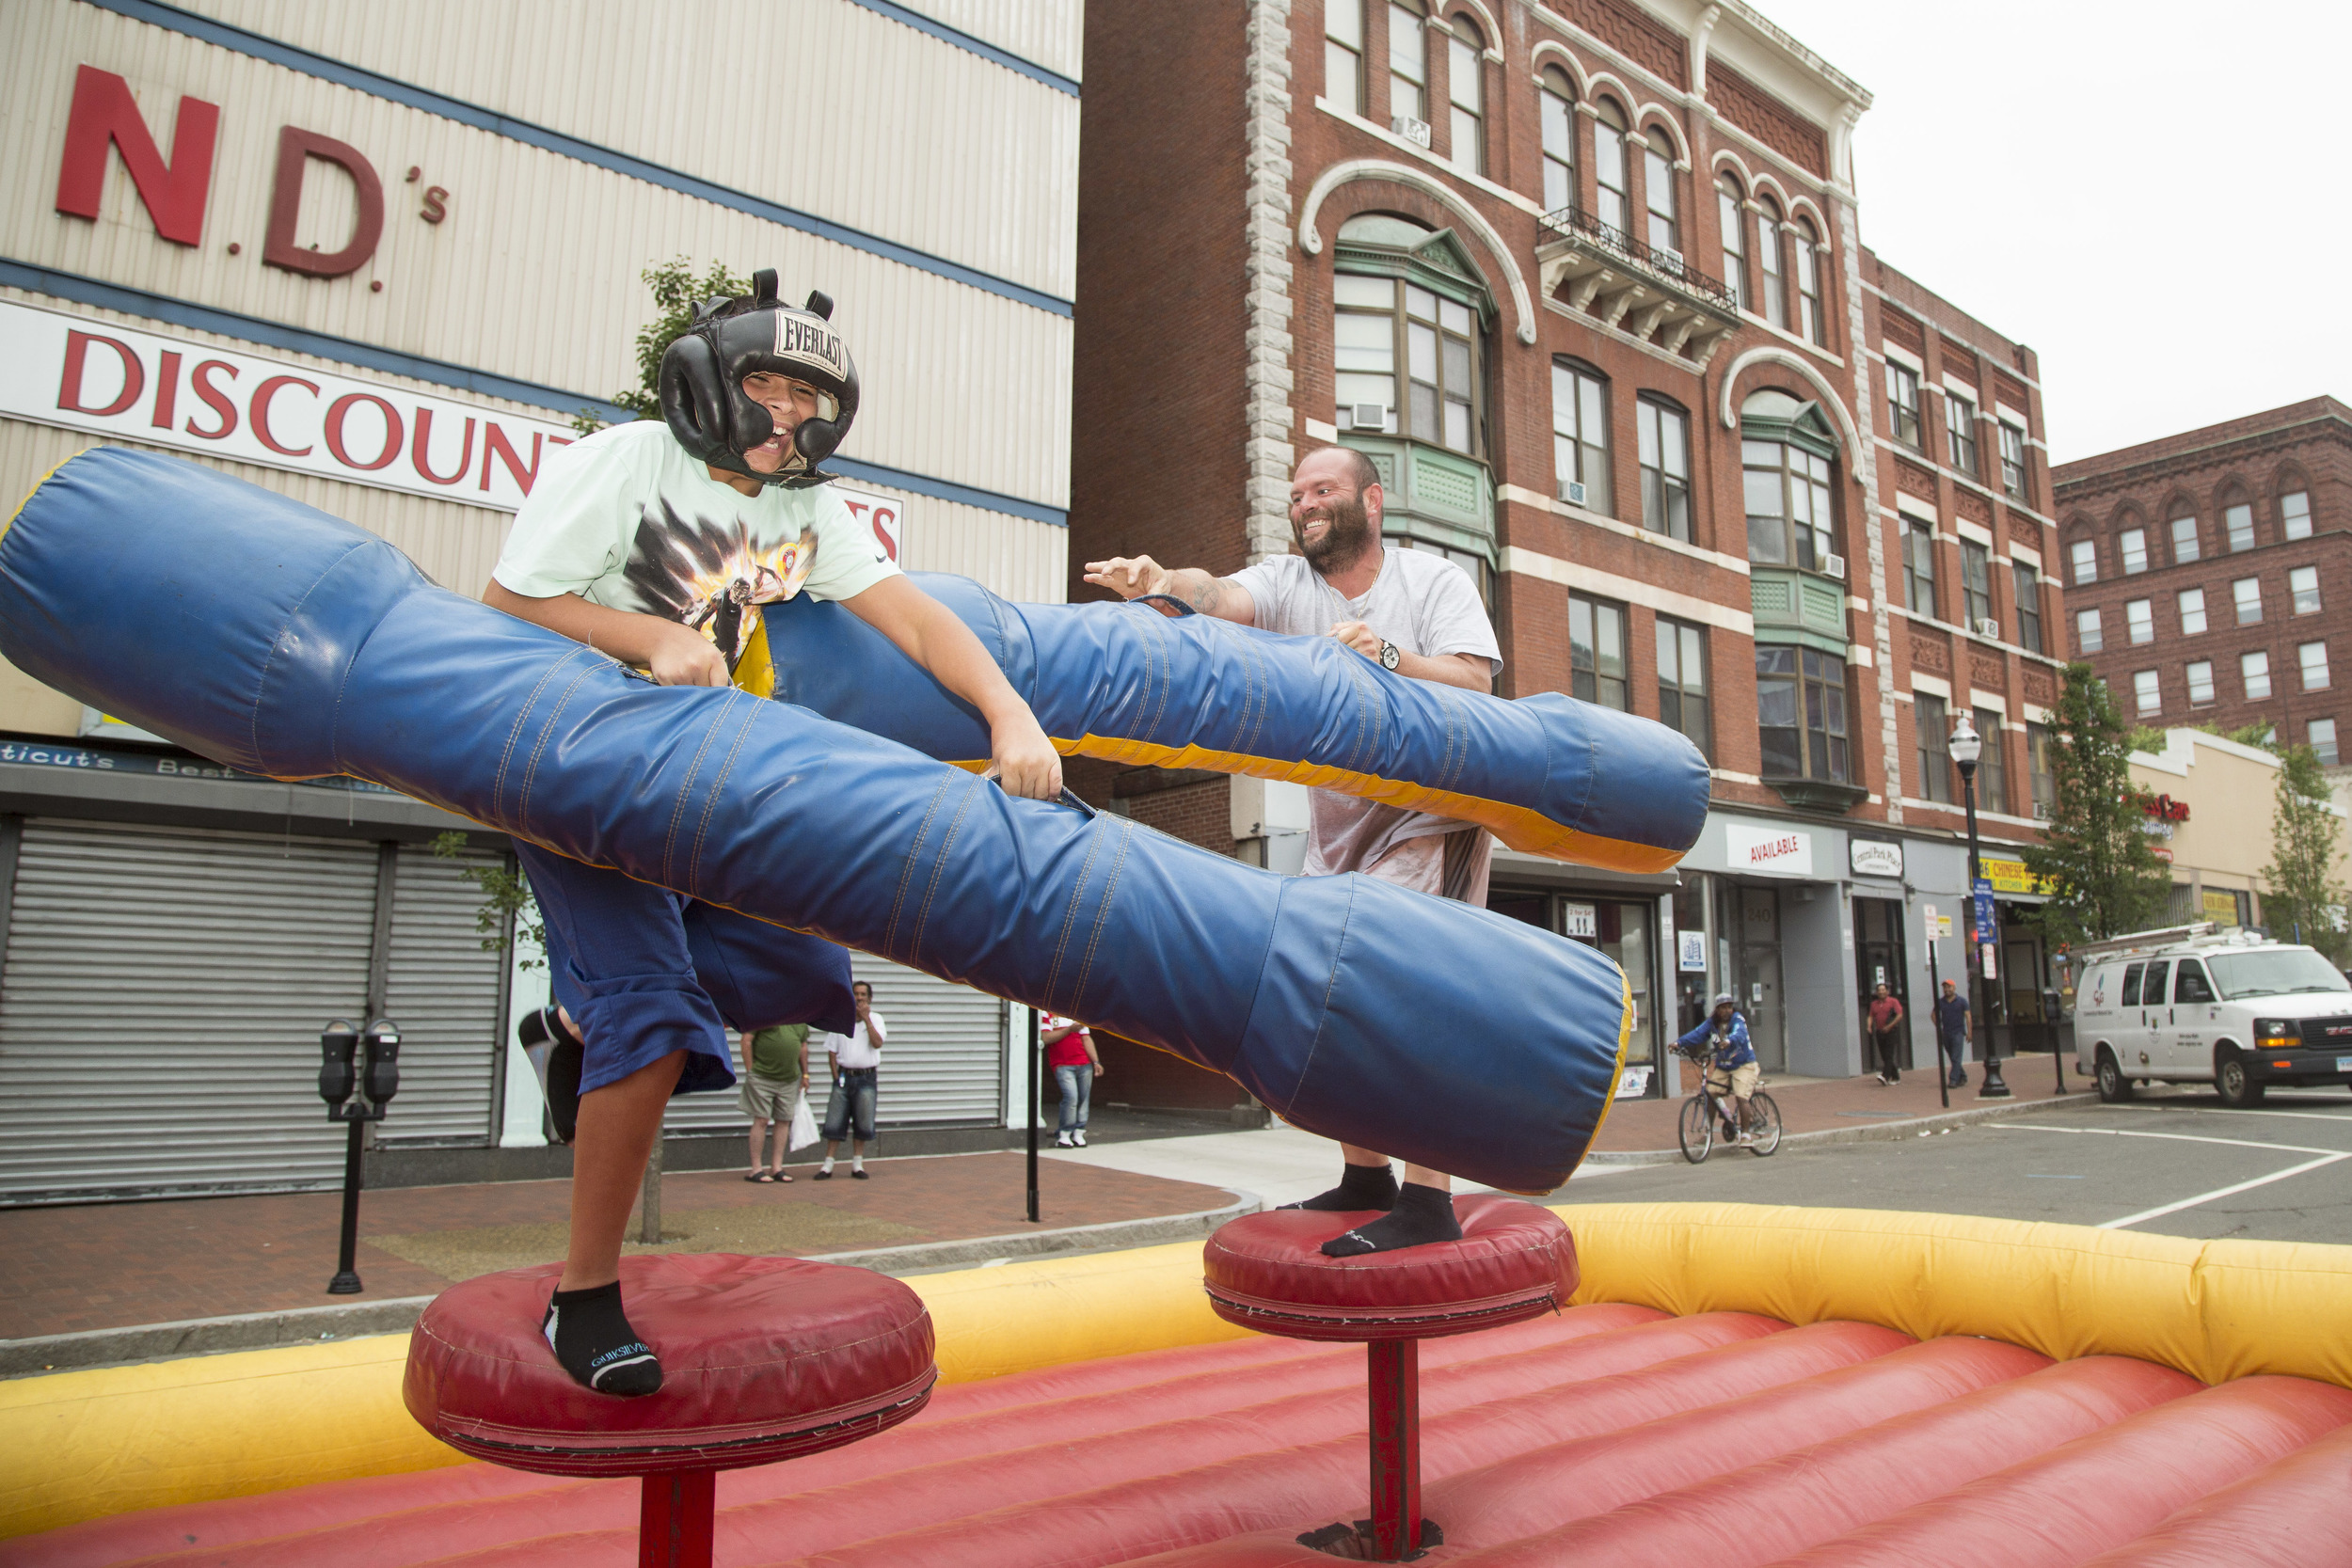 Elvin Rios knocks his son, Johnny Rosario, off an inflatable game in New Britain.